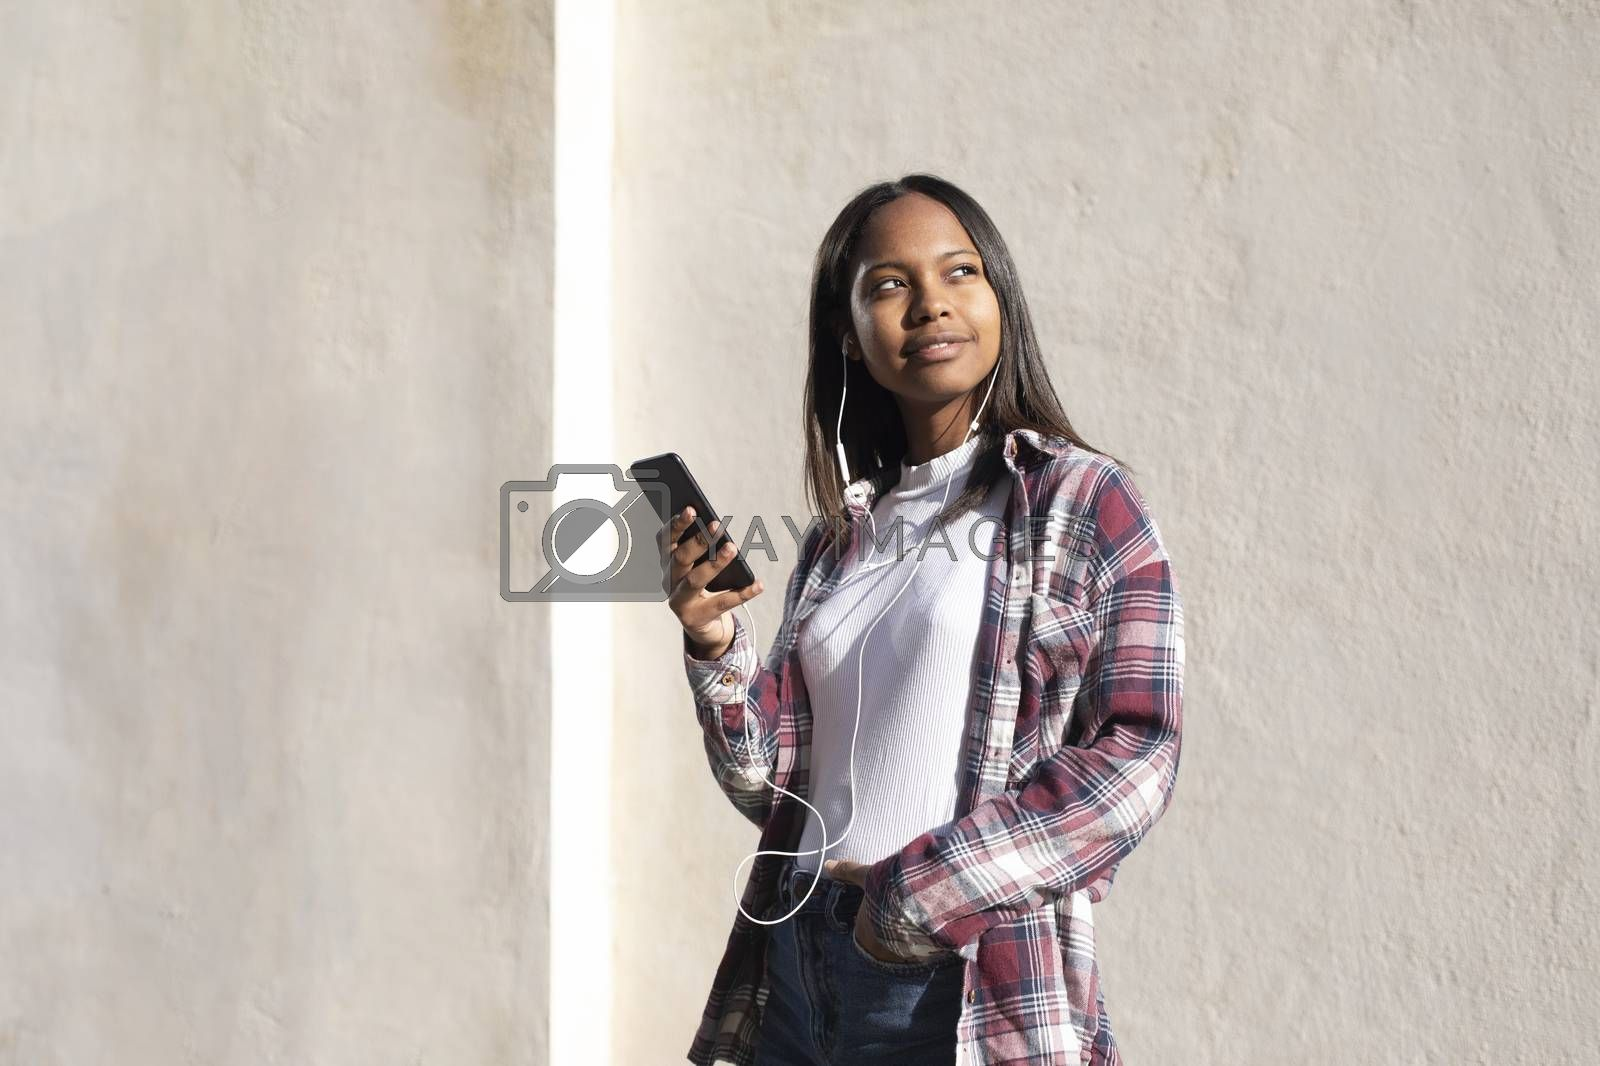 Portrait of African American young woman standing on the street while using a mobile phone